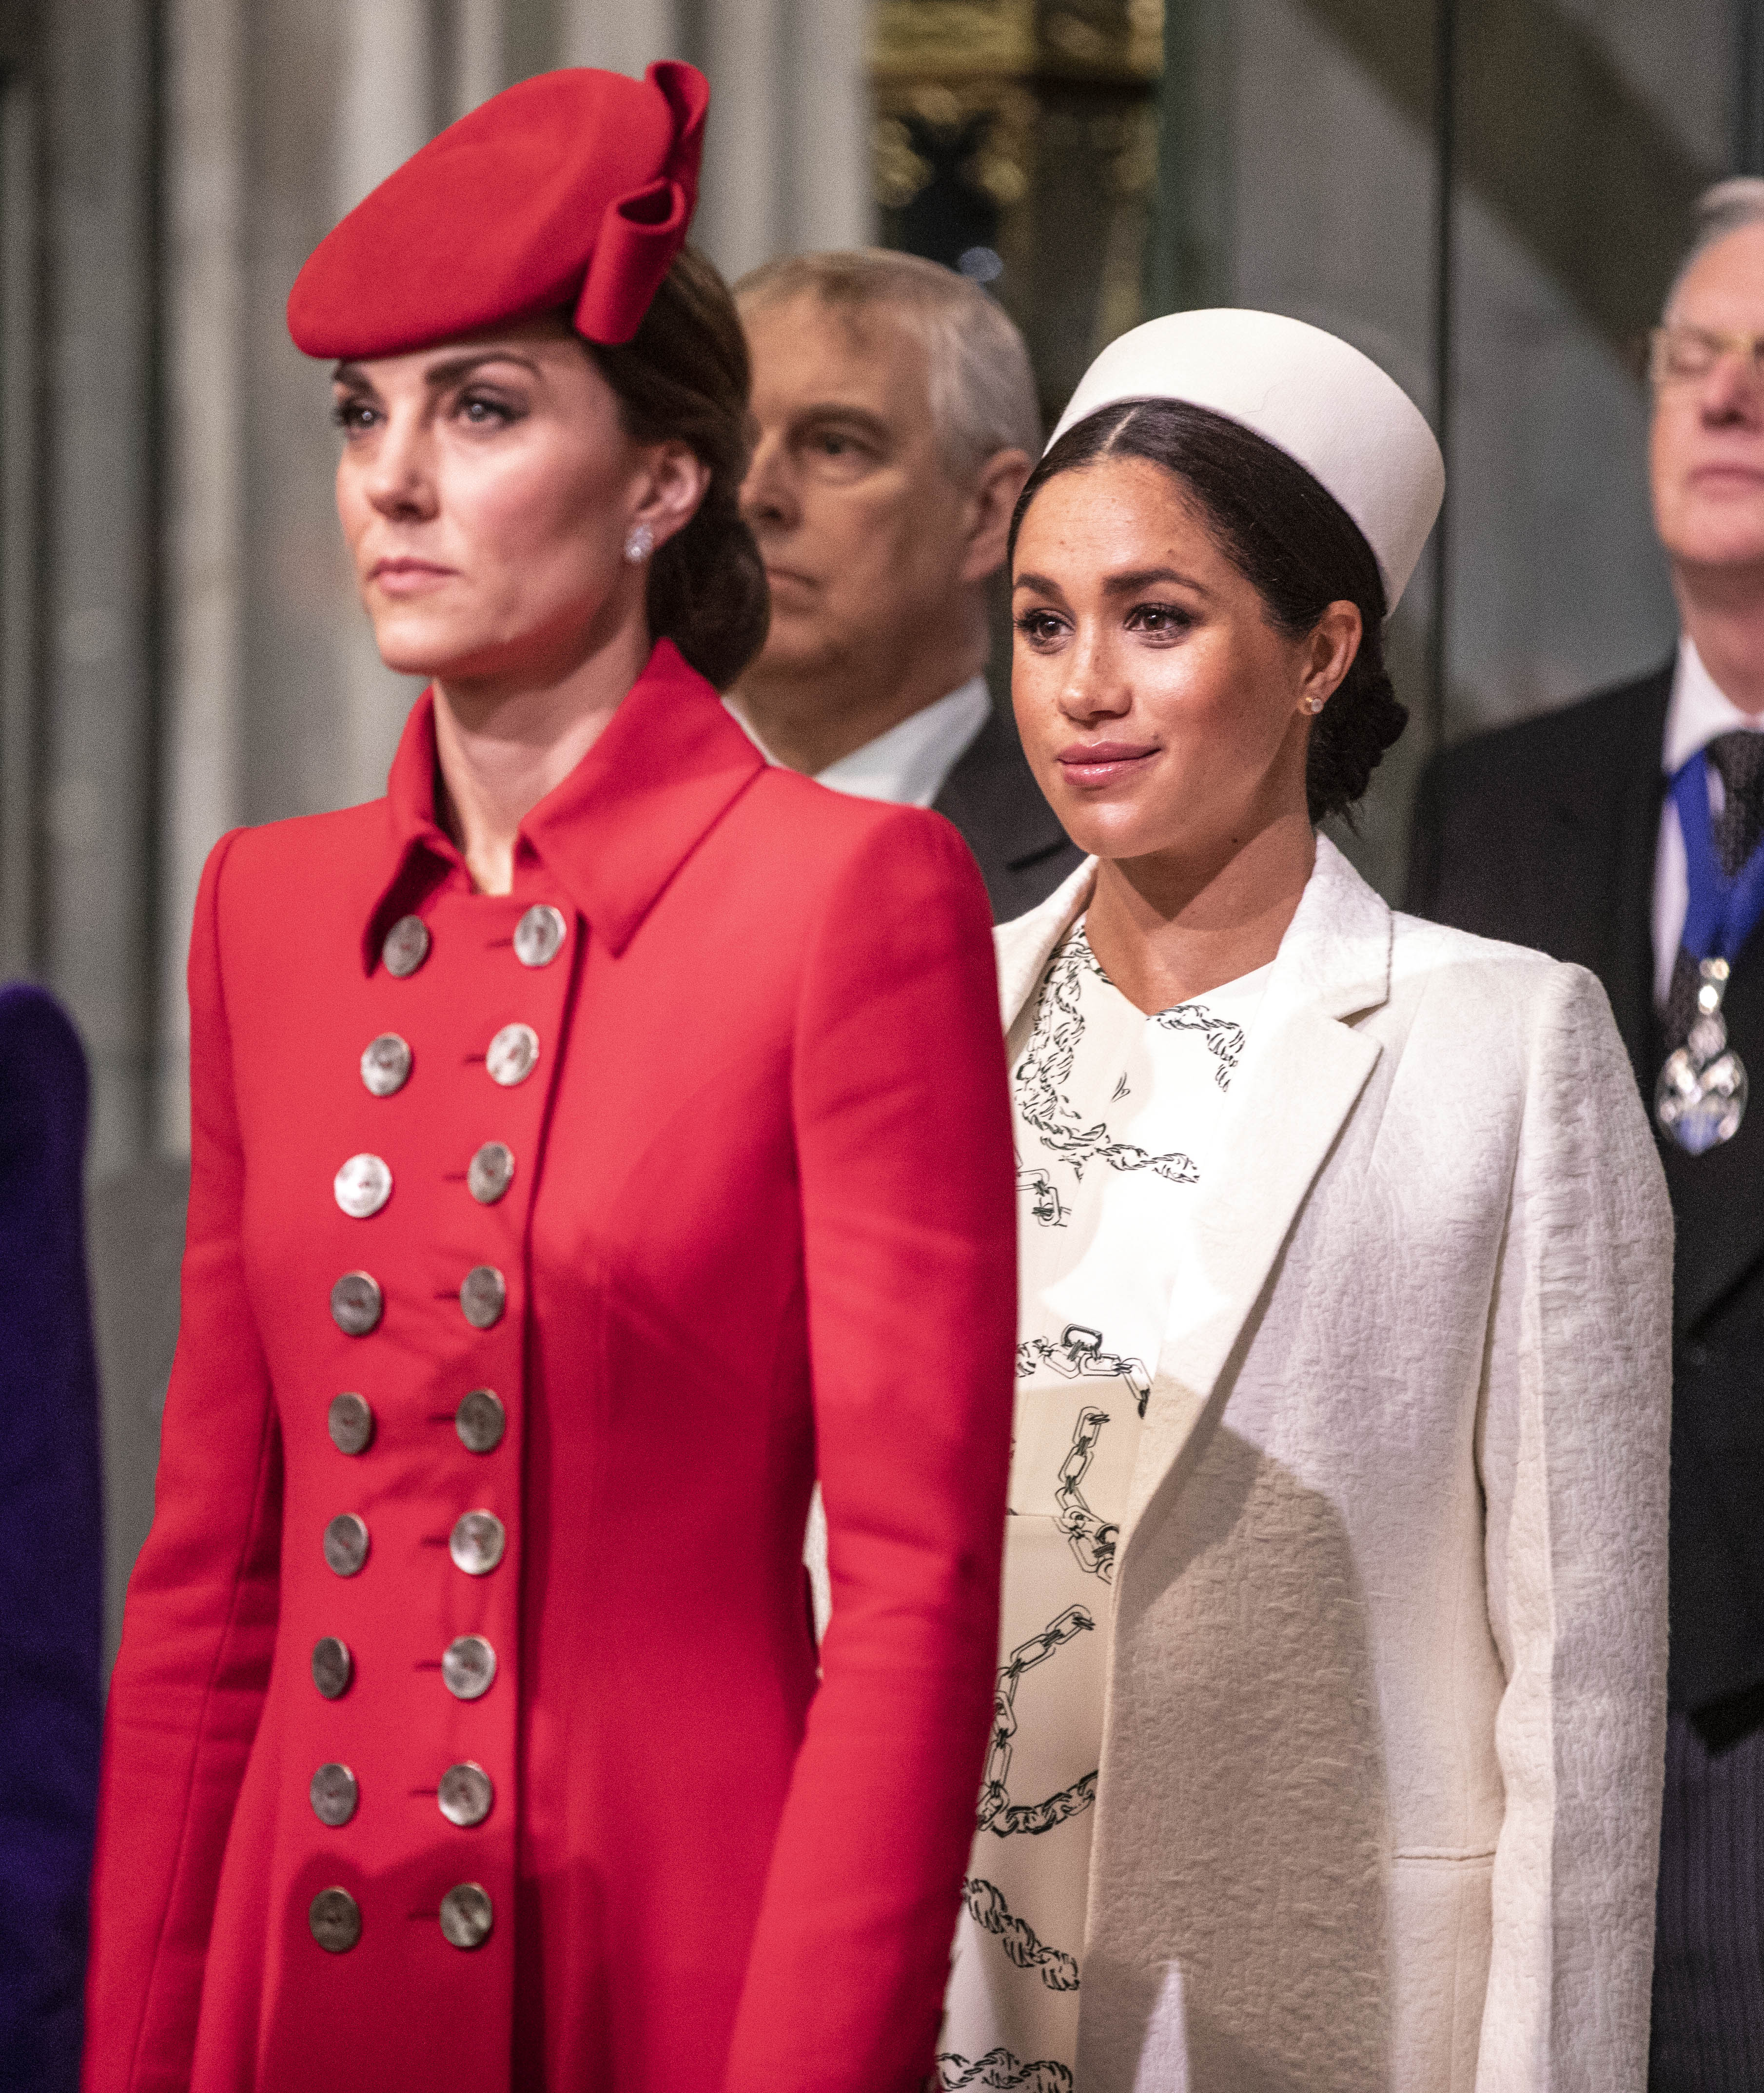 The Duchess of Cambridge stands with Duchess of Sussex at Westminster Abbey for a Commonwealth day service on March 11, 2019 in London, England   Photo: Getty Images